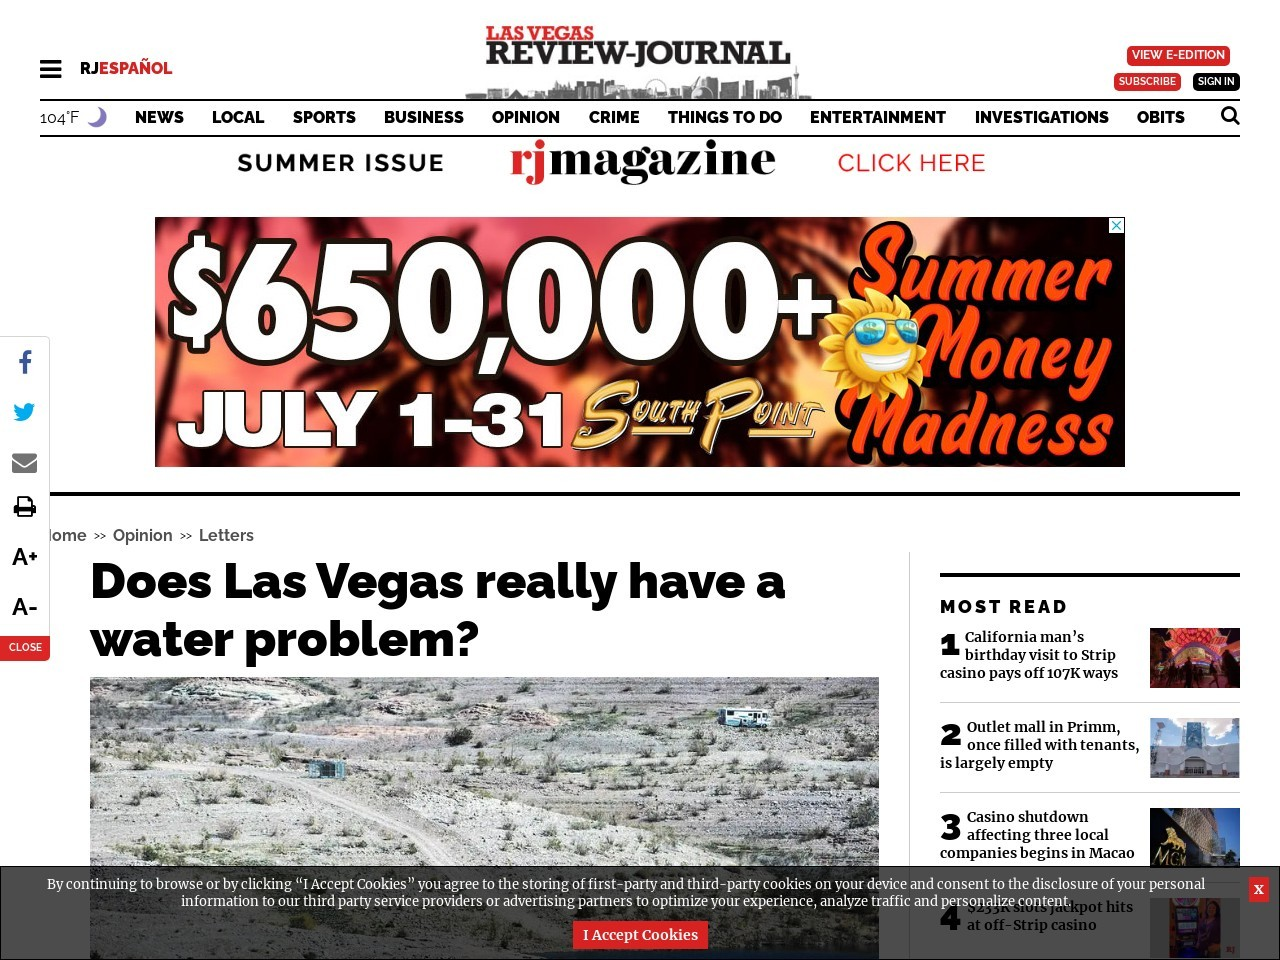 Does Las Vegas really have a water problem?